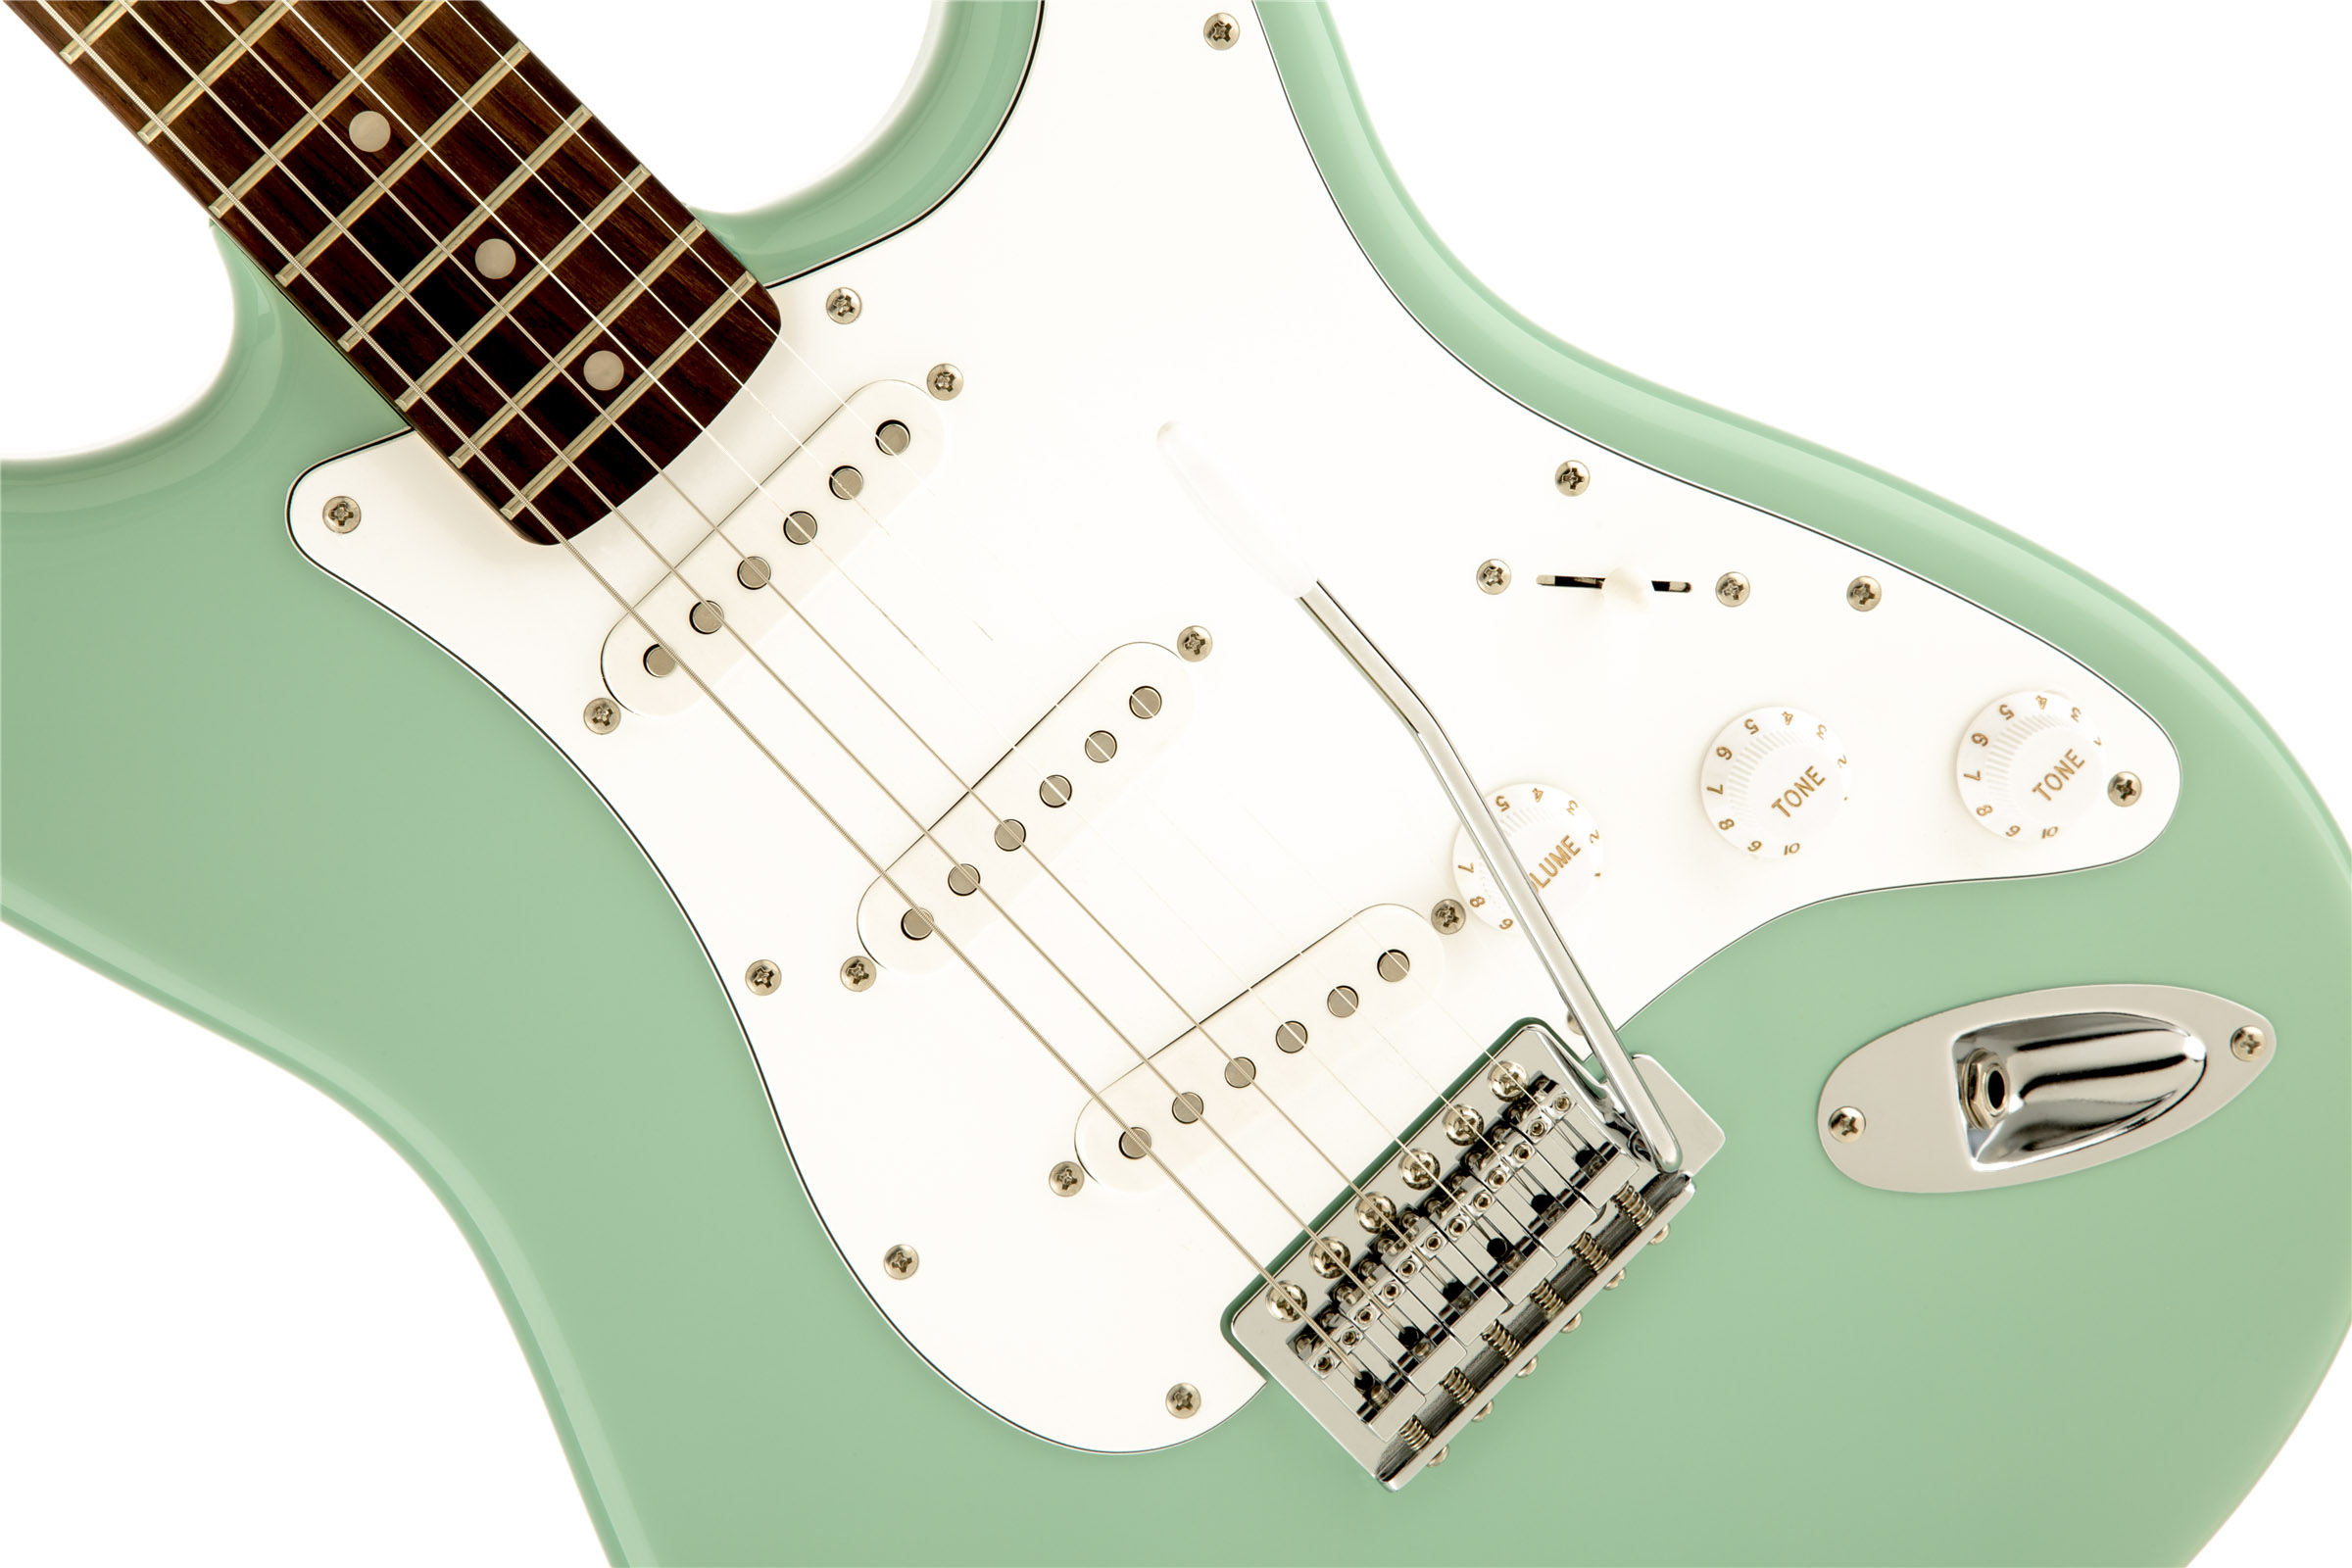 thumbnail 4 - Fender Squier Affinity Stratocaster - Surf Green w/ Frontman 10G Amplifier